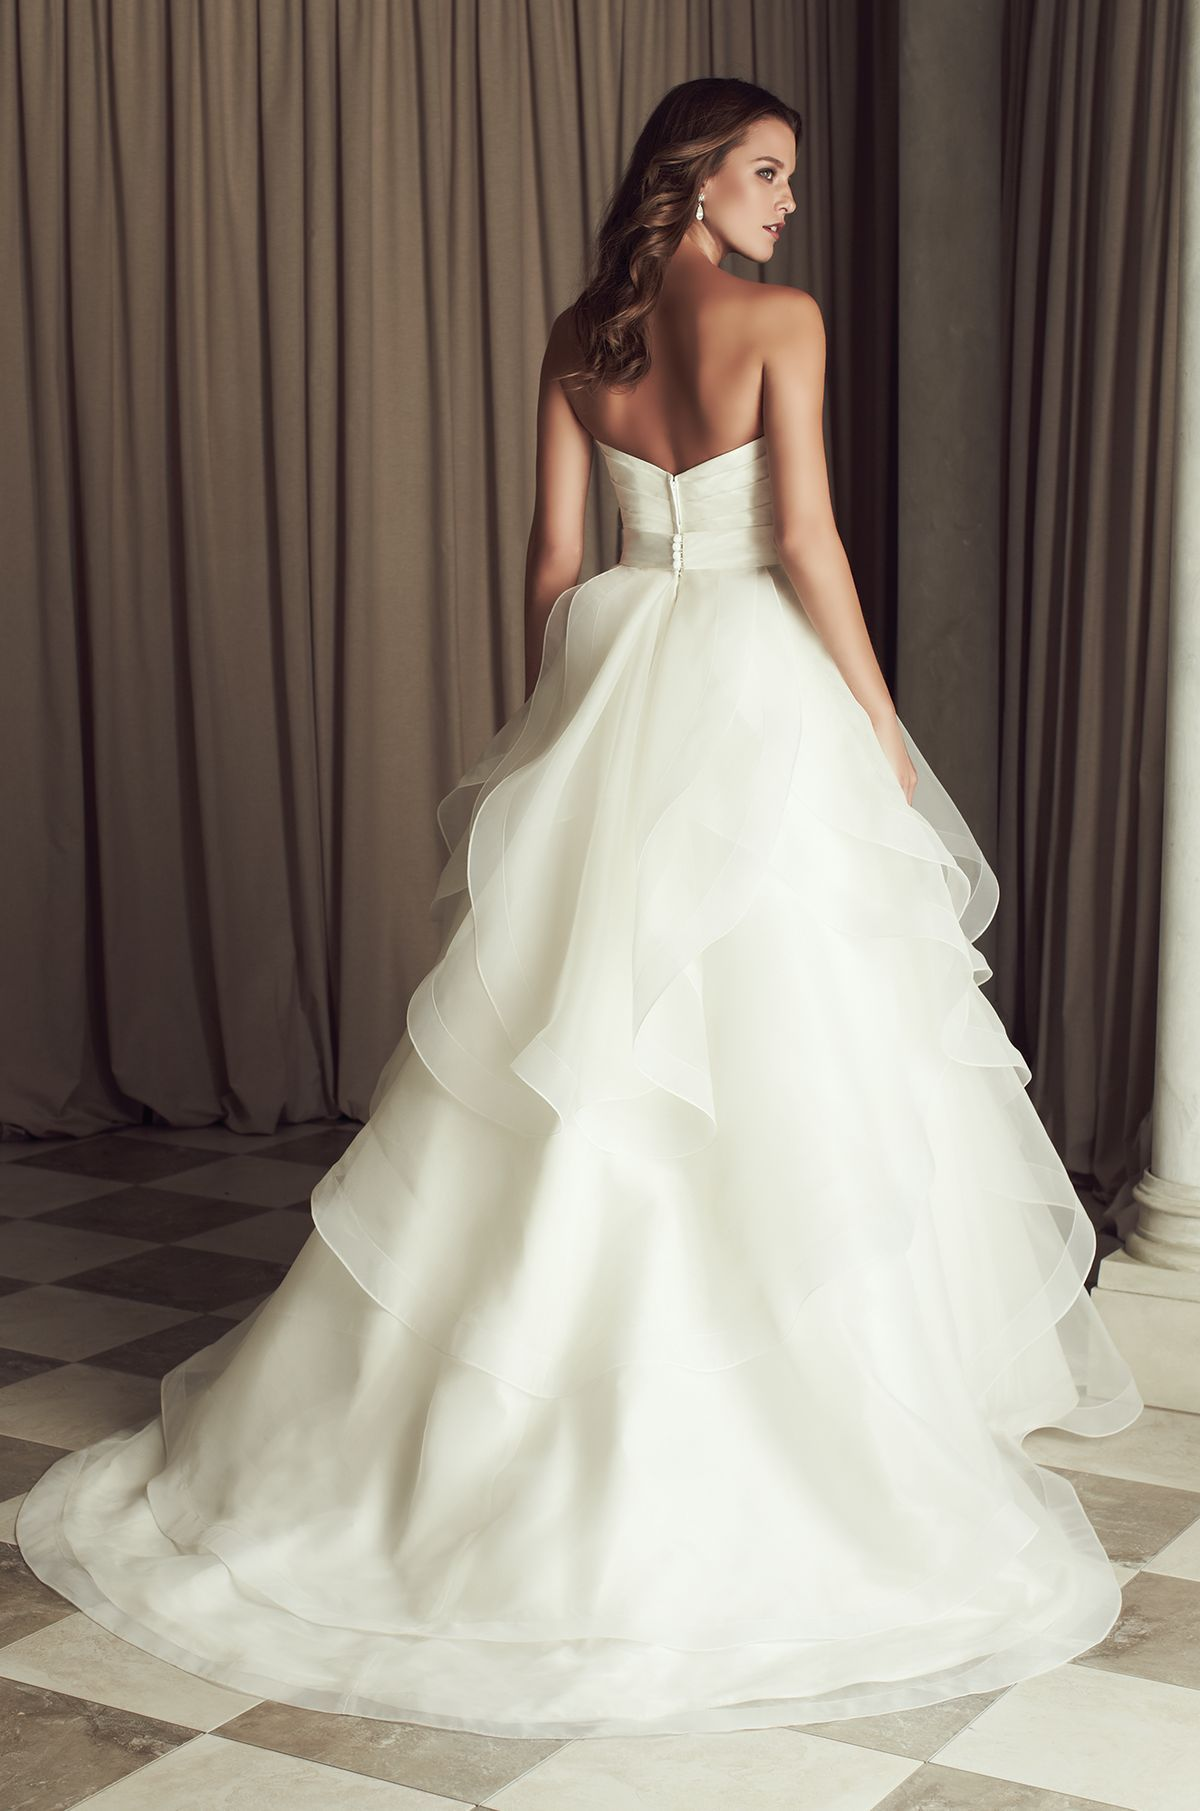 Paloma blanca wedding dresses paloma blanca dress collection